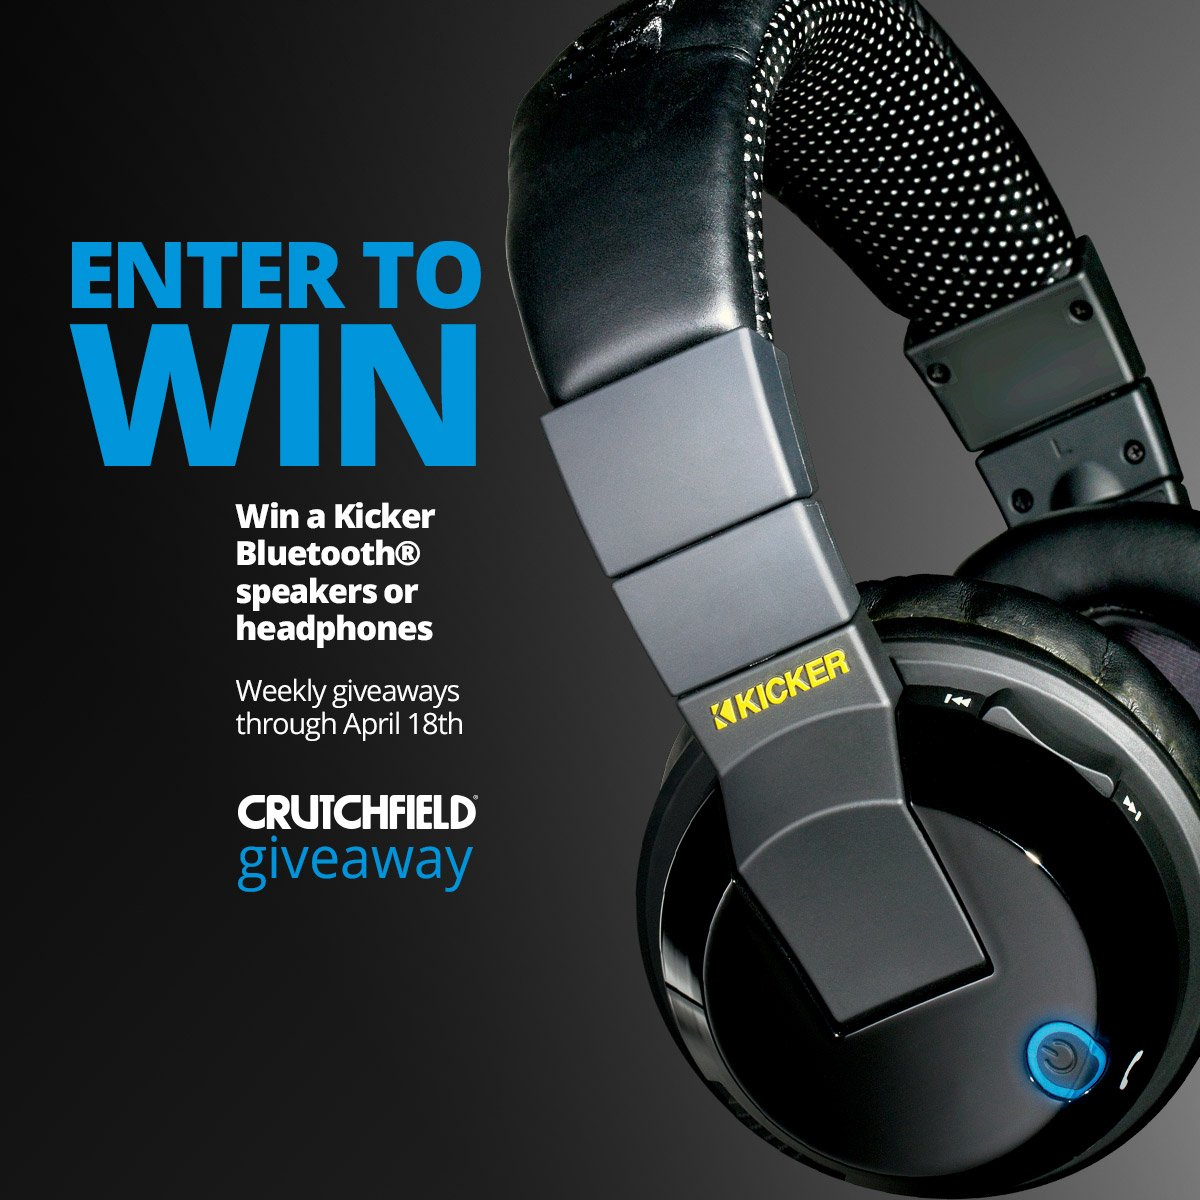 Want some free gear? Enter to win a @KICKERaudio Bluetooth speaker or headphones Good luck! https://t.co/erZ1osRlAY https://t.co/HHiGanjUy2